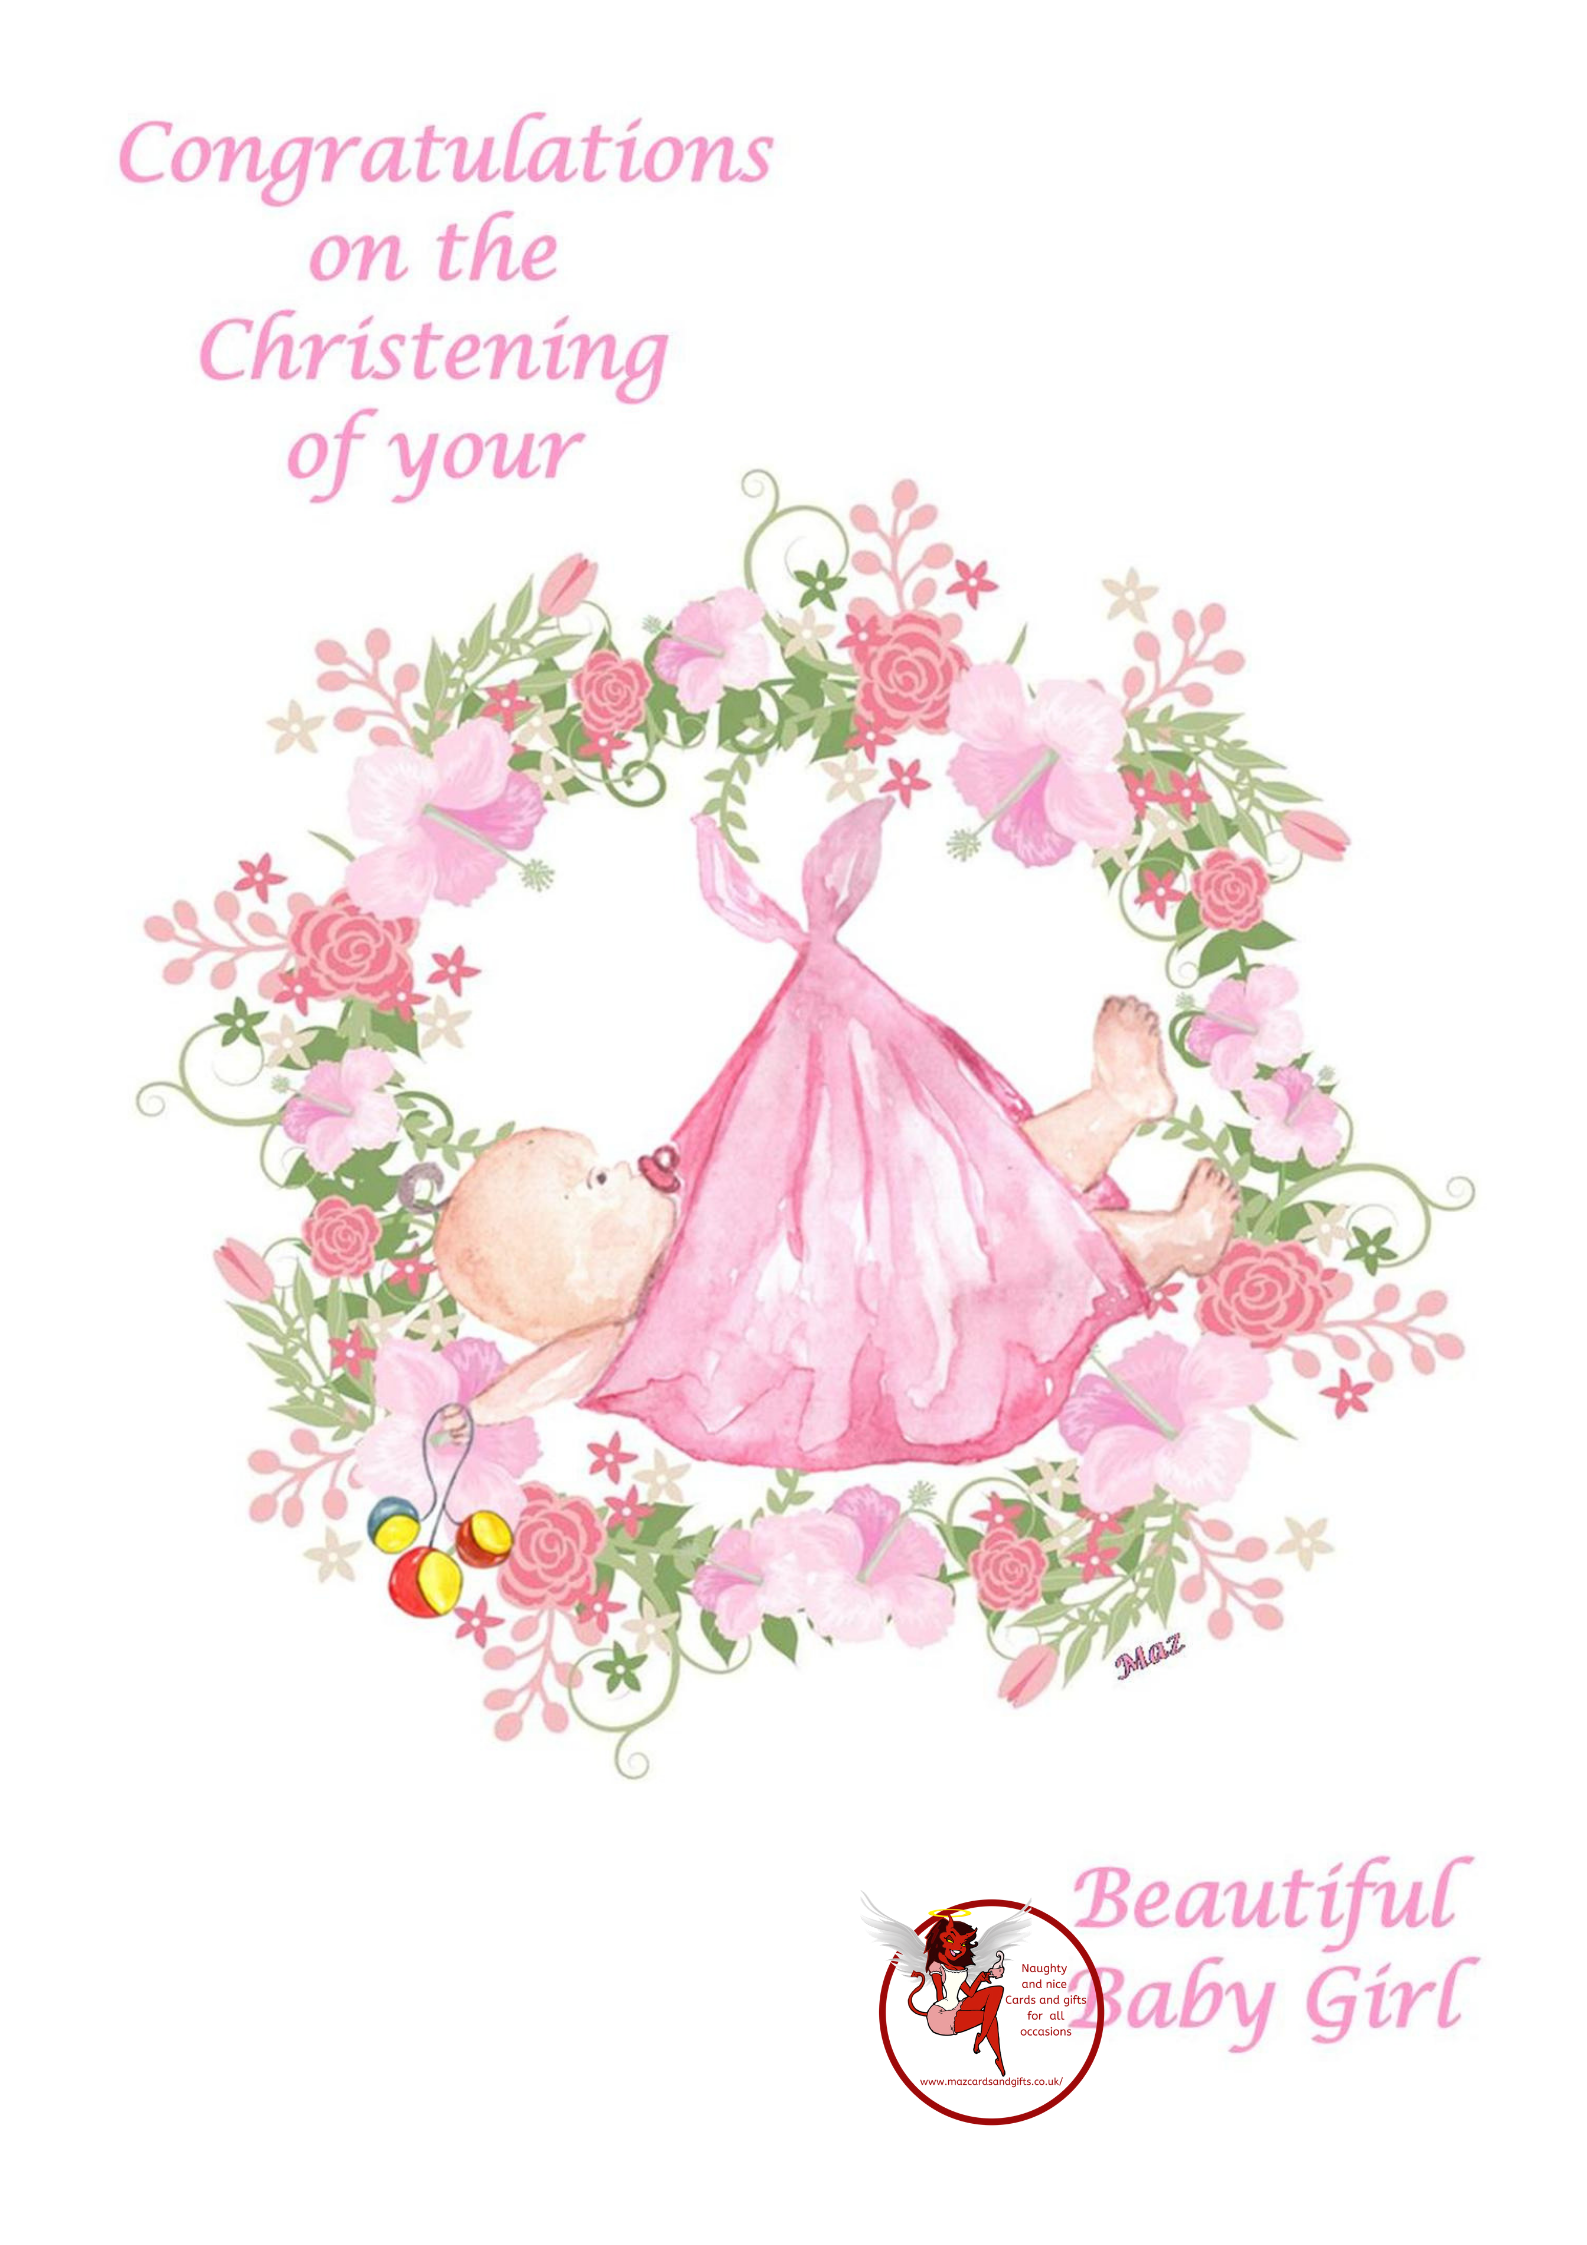 Christening Card - Baby Girl - Order No 005